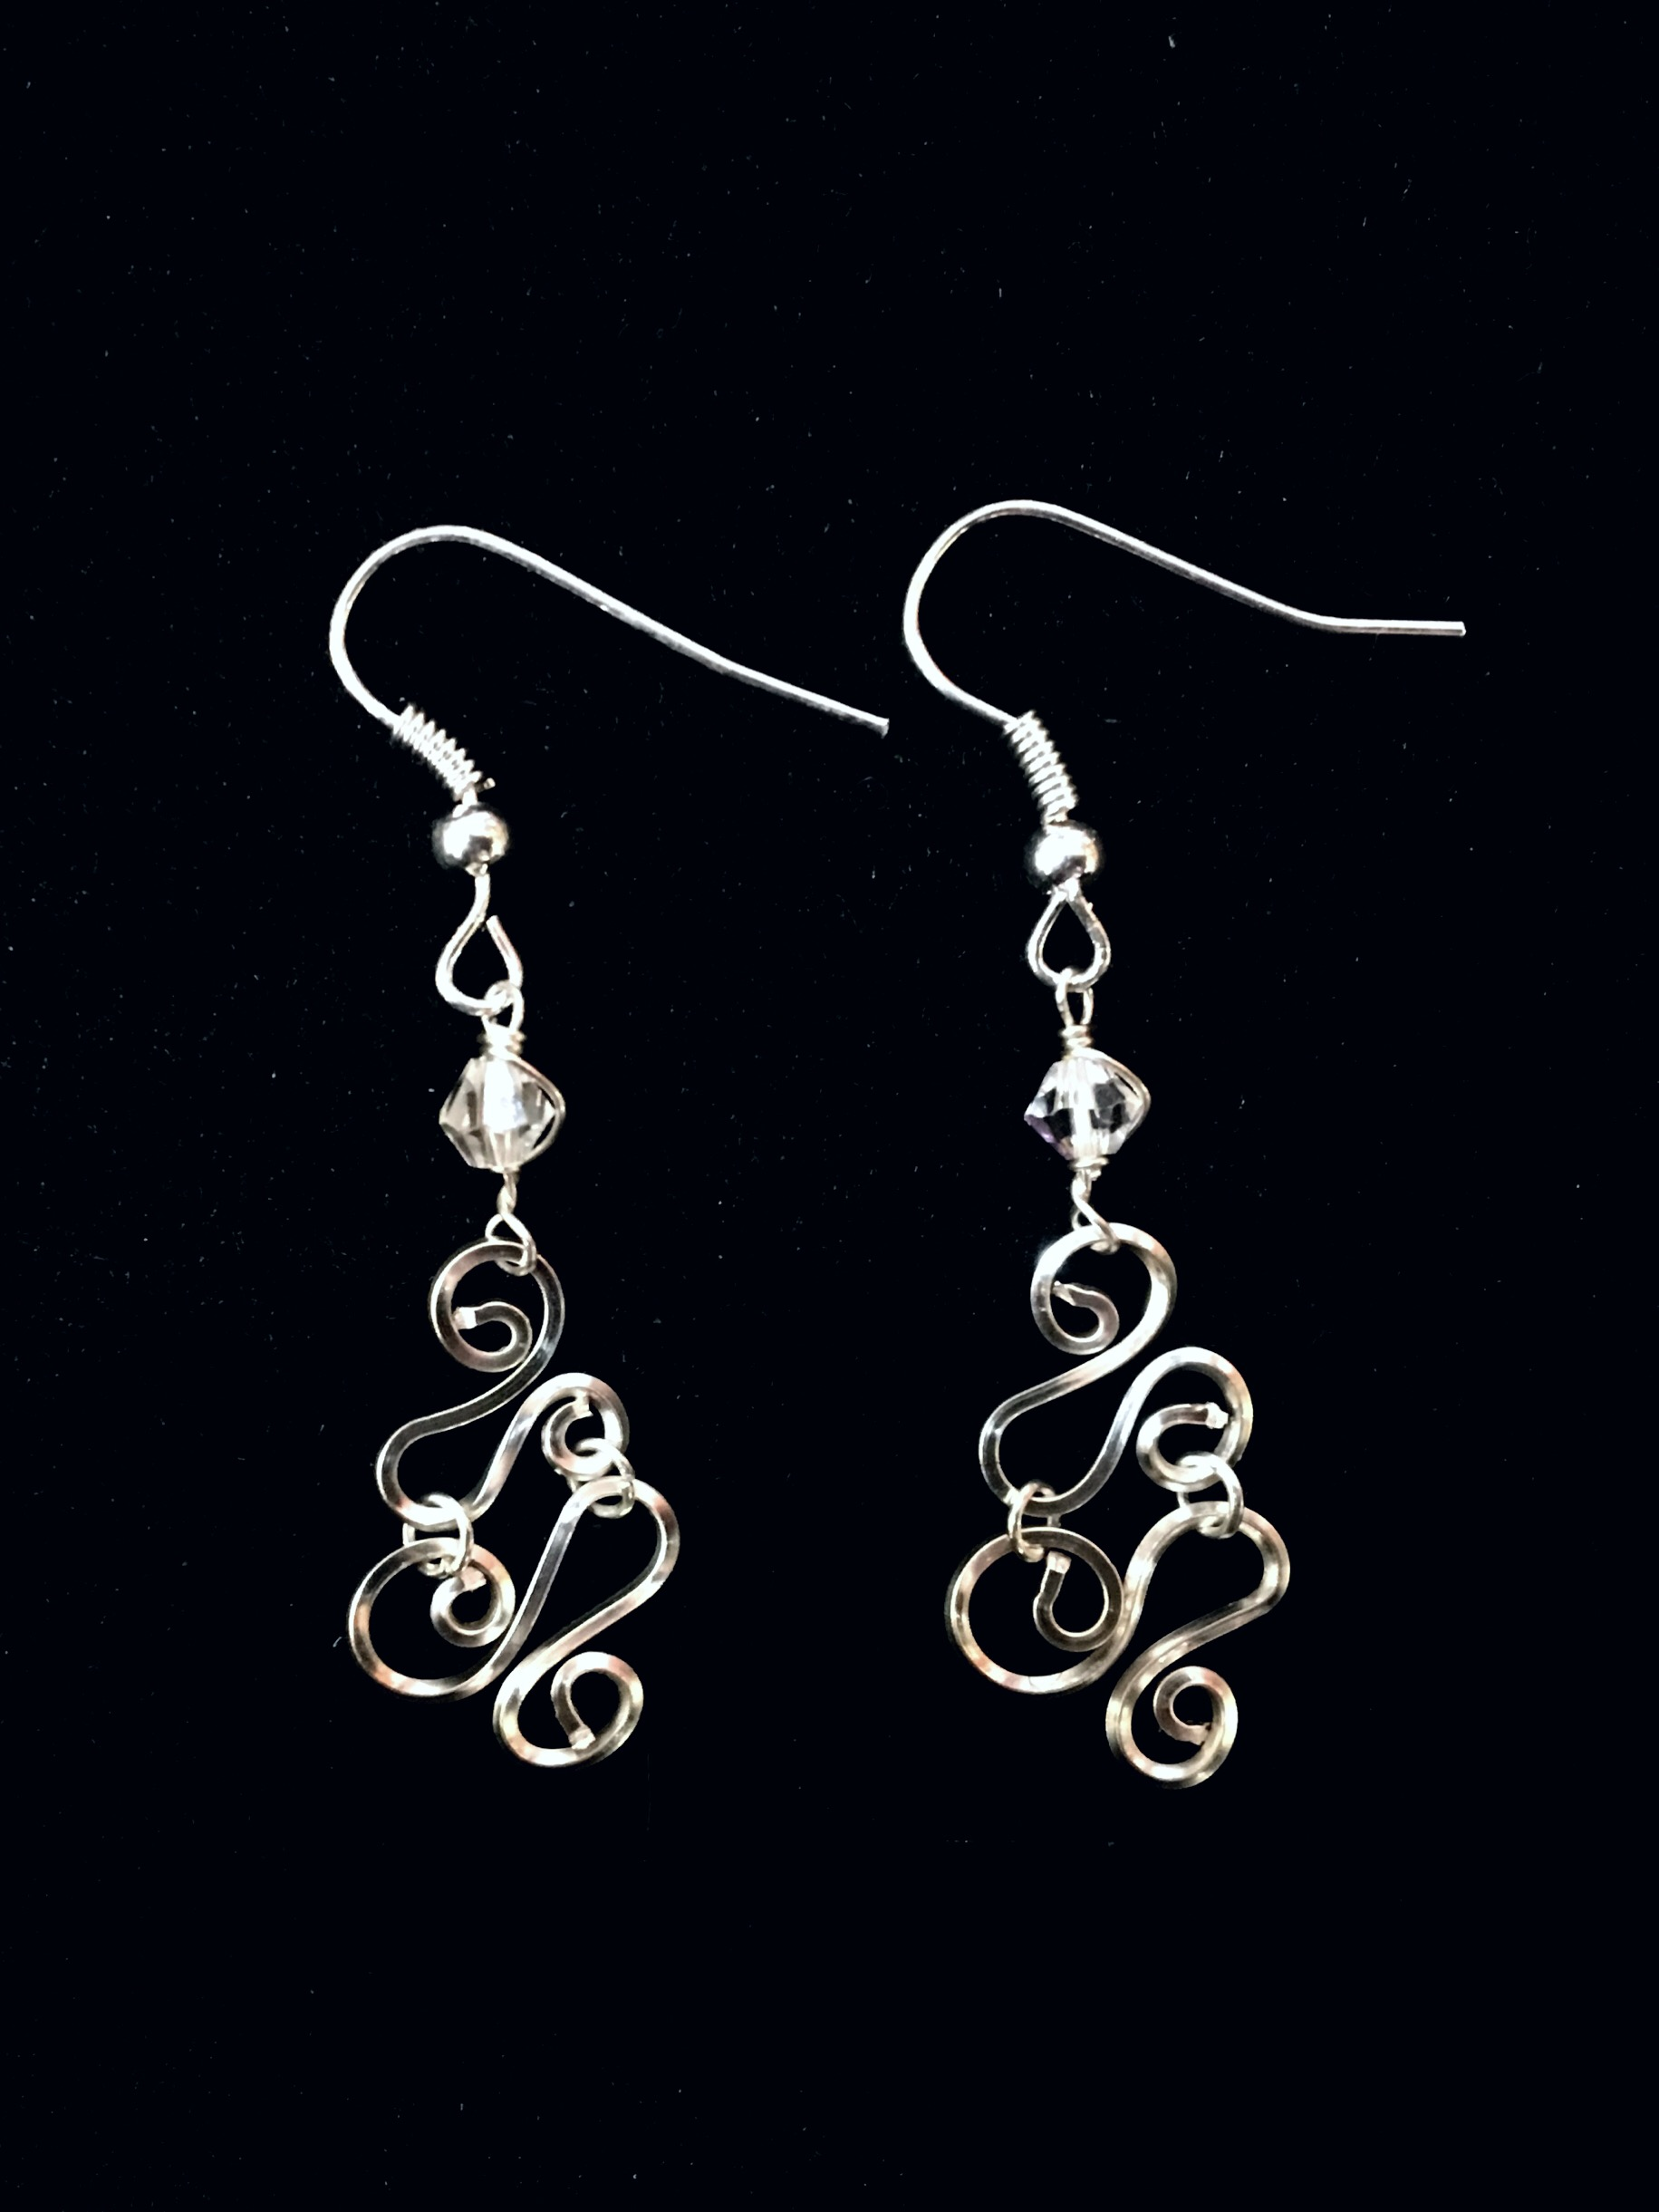 Candid Claire Earrings - Swirly